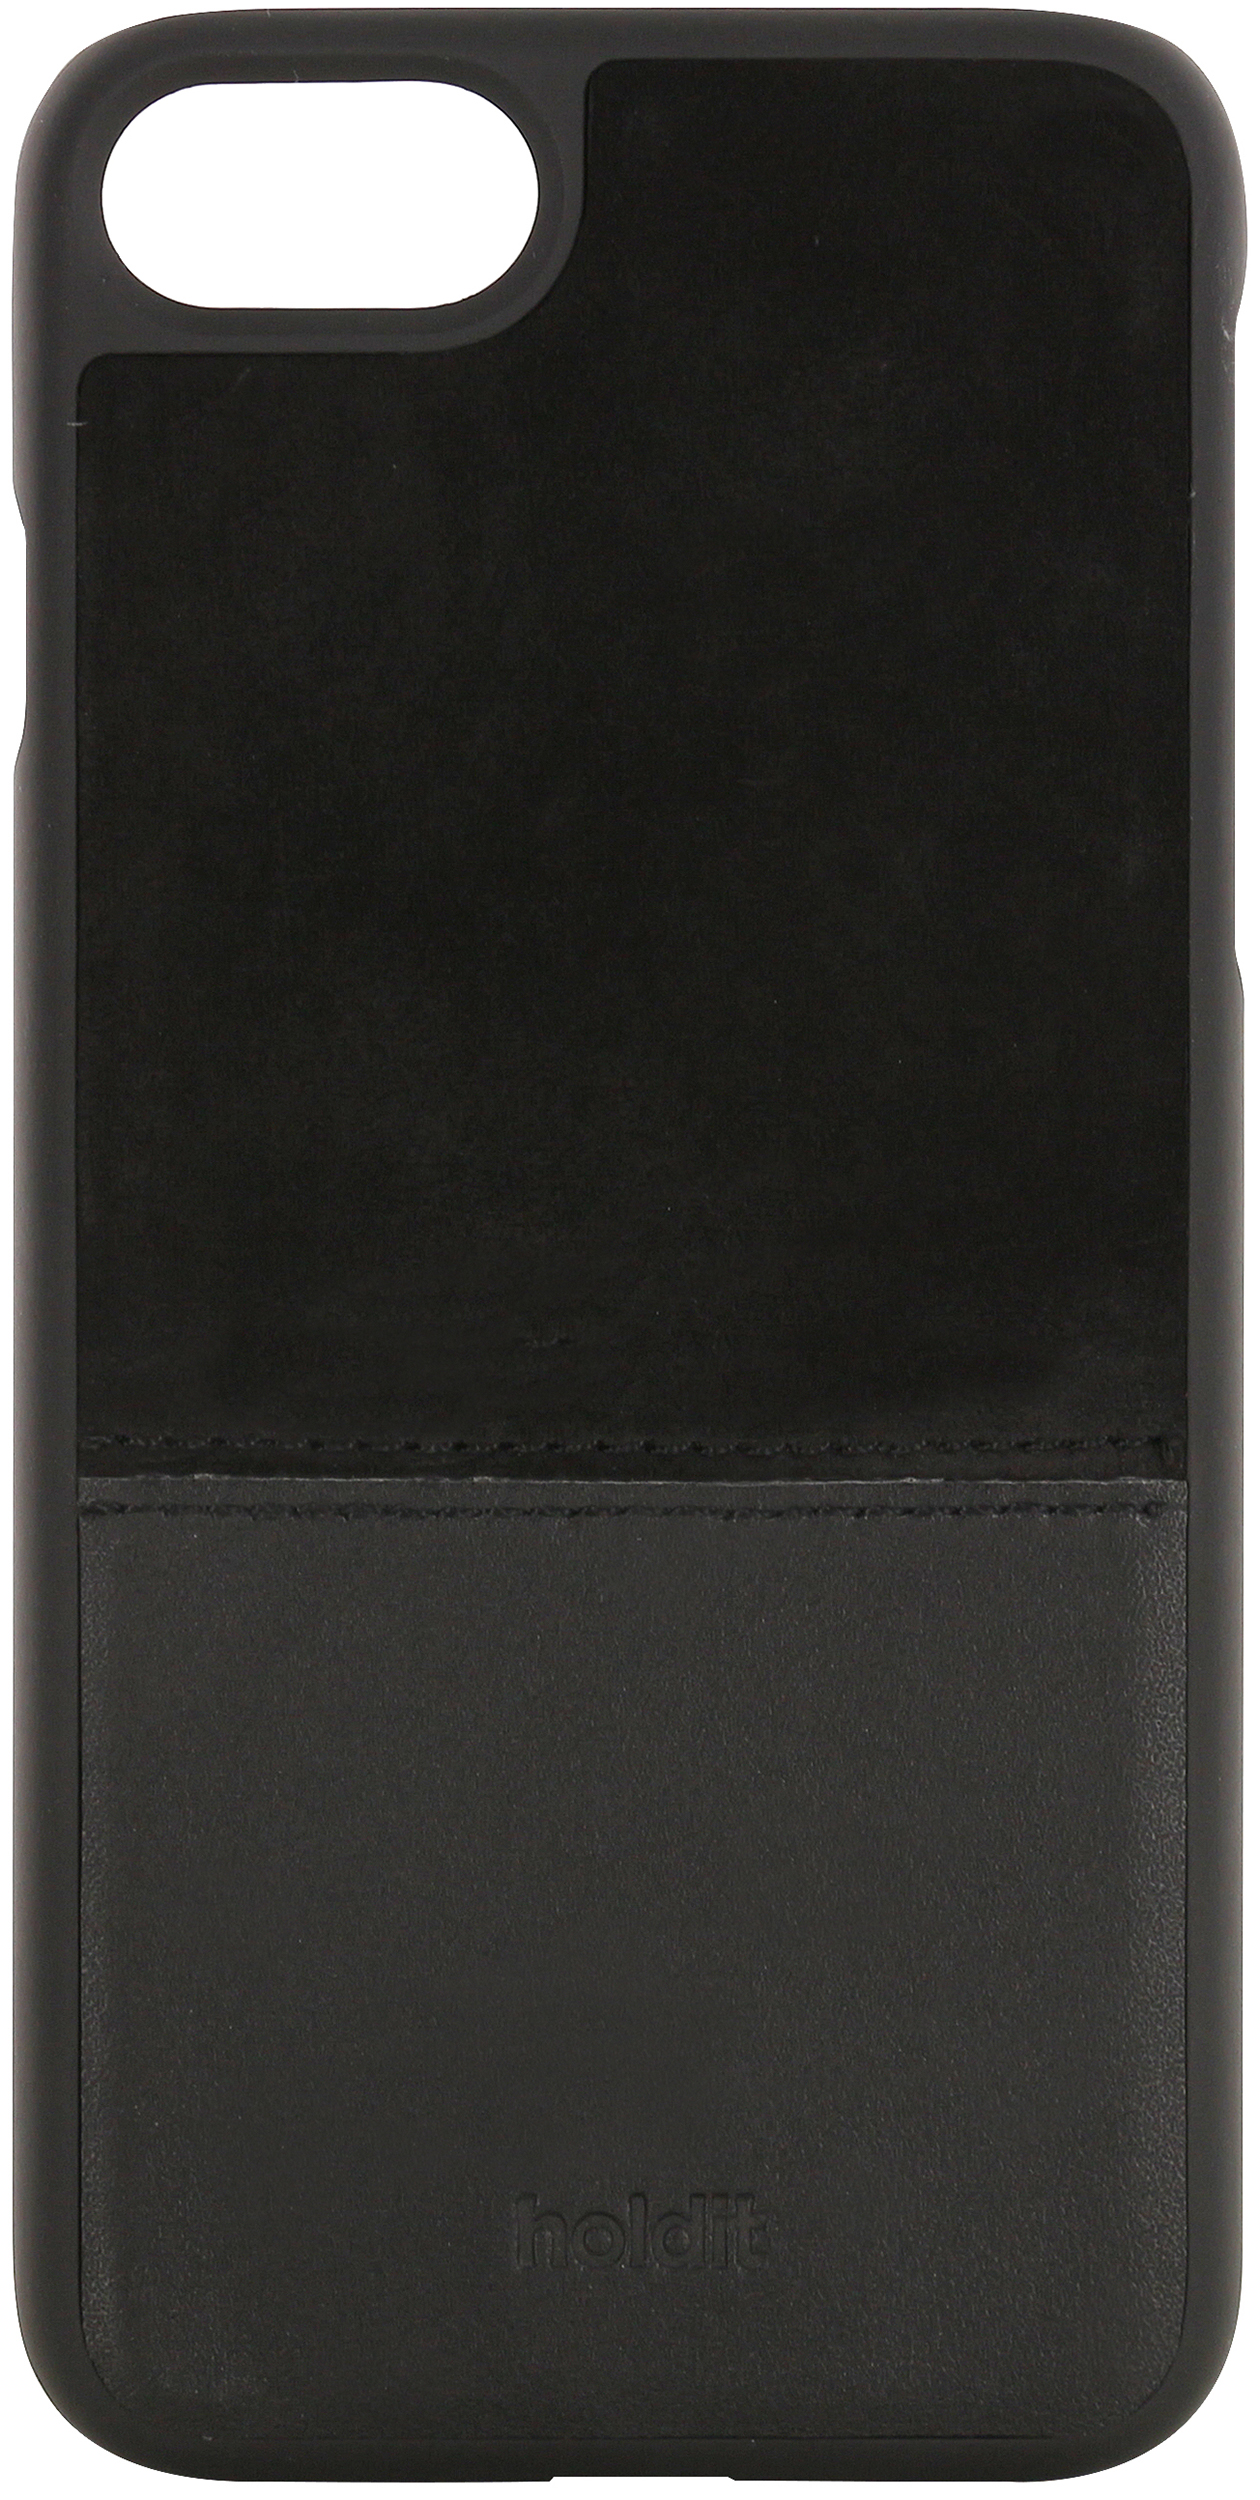 iPhone SE (2020)/8/7/6s/6, selected case leather/suede, black